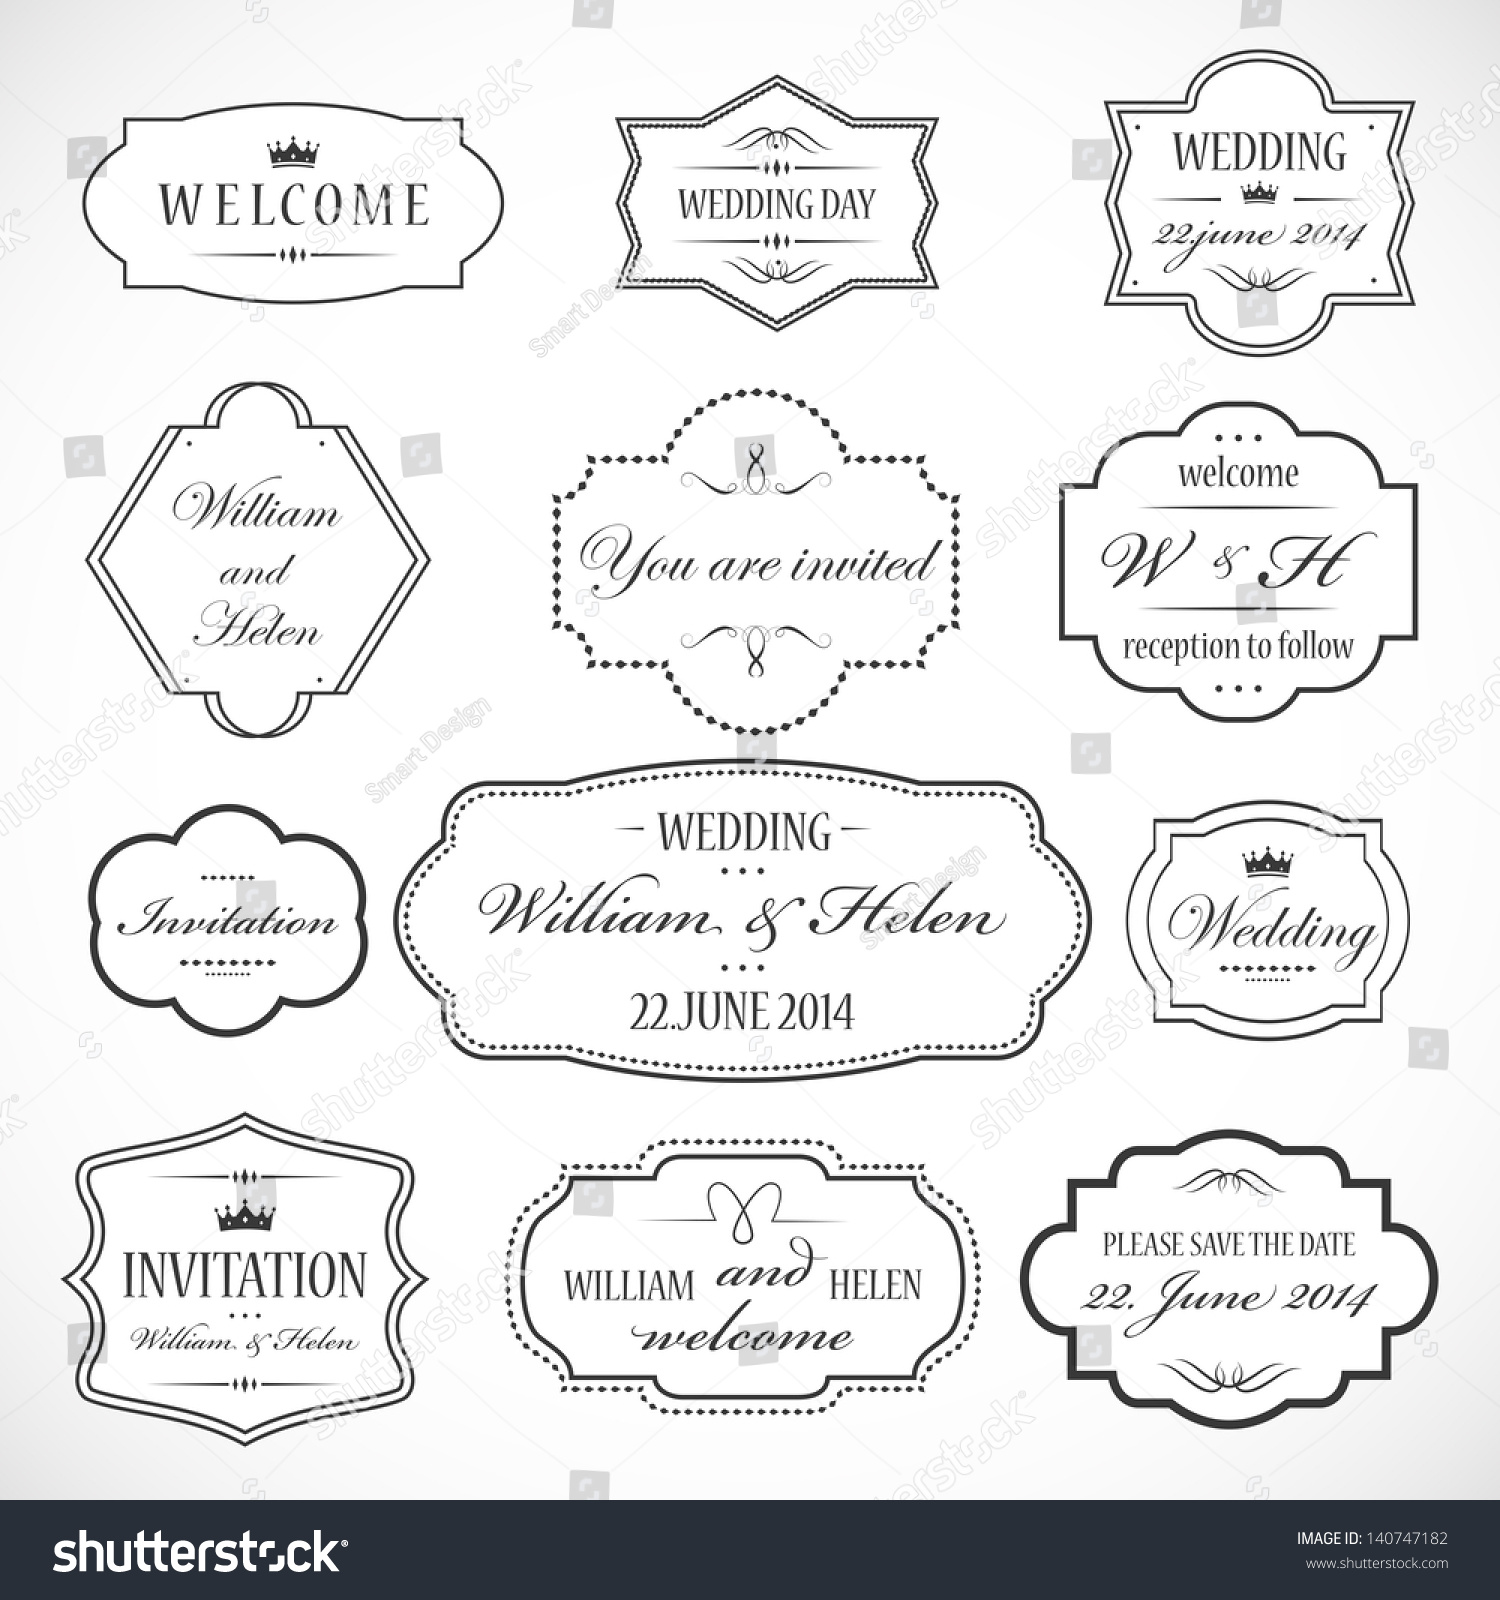 Wedding ornaments 2014 - Frames And Ornaments Set Isolated On Gray Background Vector Illustration Graphic Design Editable